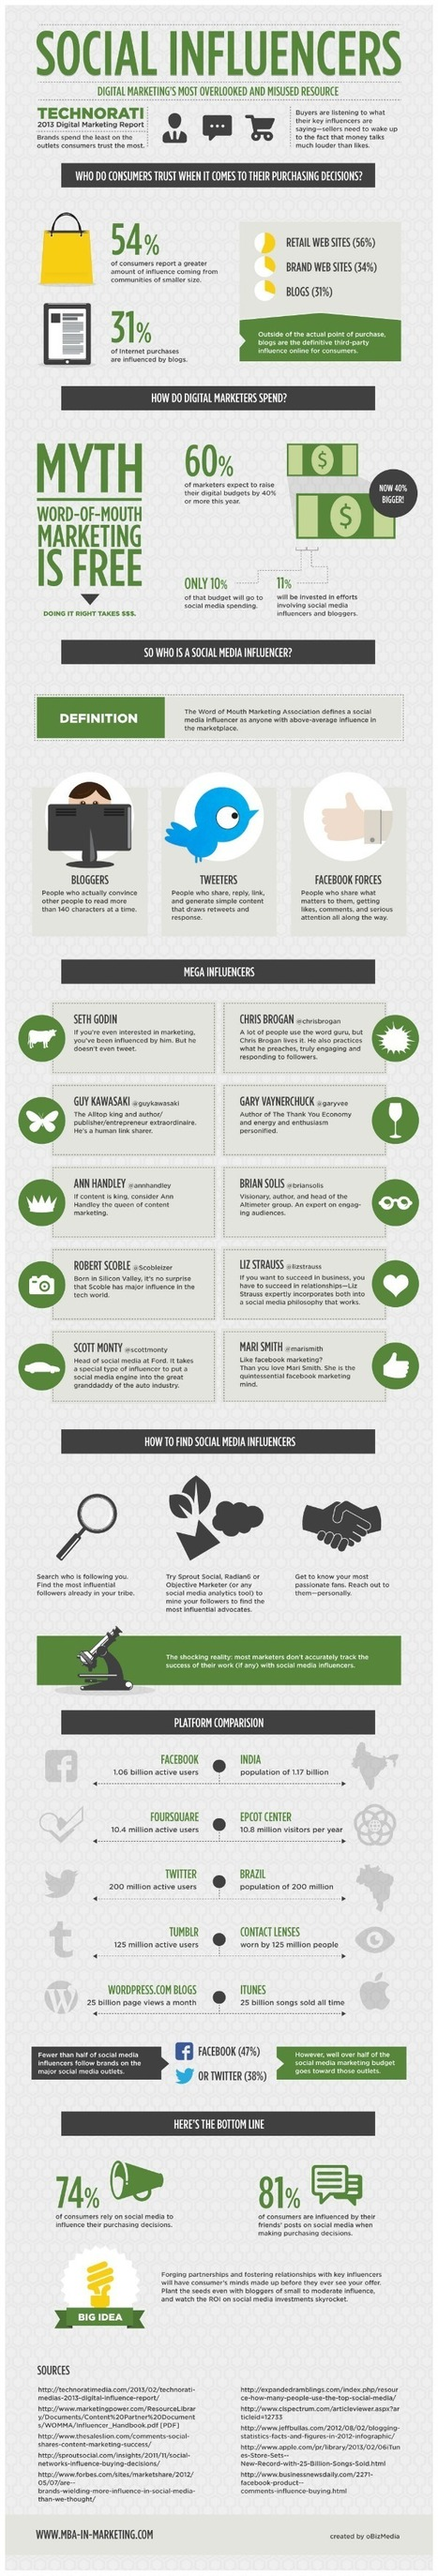 Infographic: Social Influencers - Marketing Technology Blog | The Daily Marketing Gangster | Scoop.it